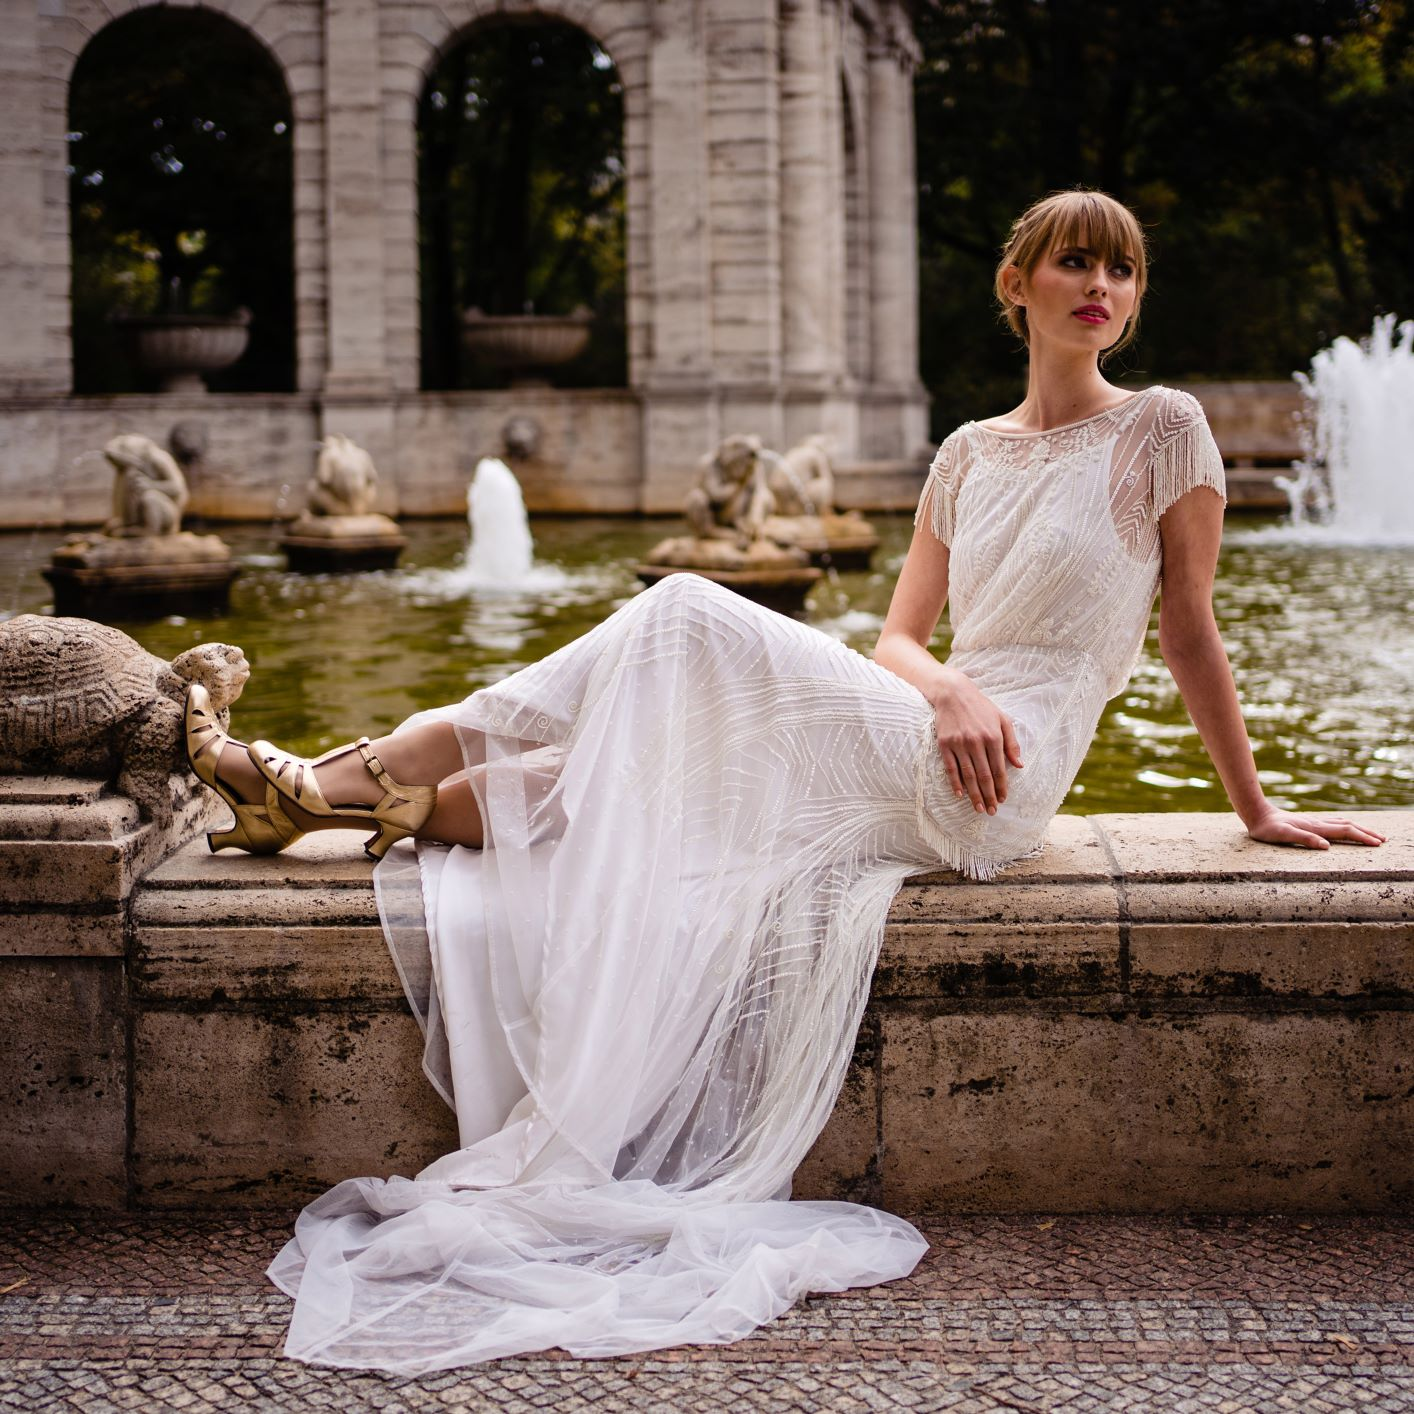 Luxury-Wedding-TildaKnopfBridal-VintageWeddingDress-Gertrude